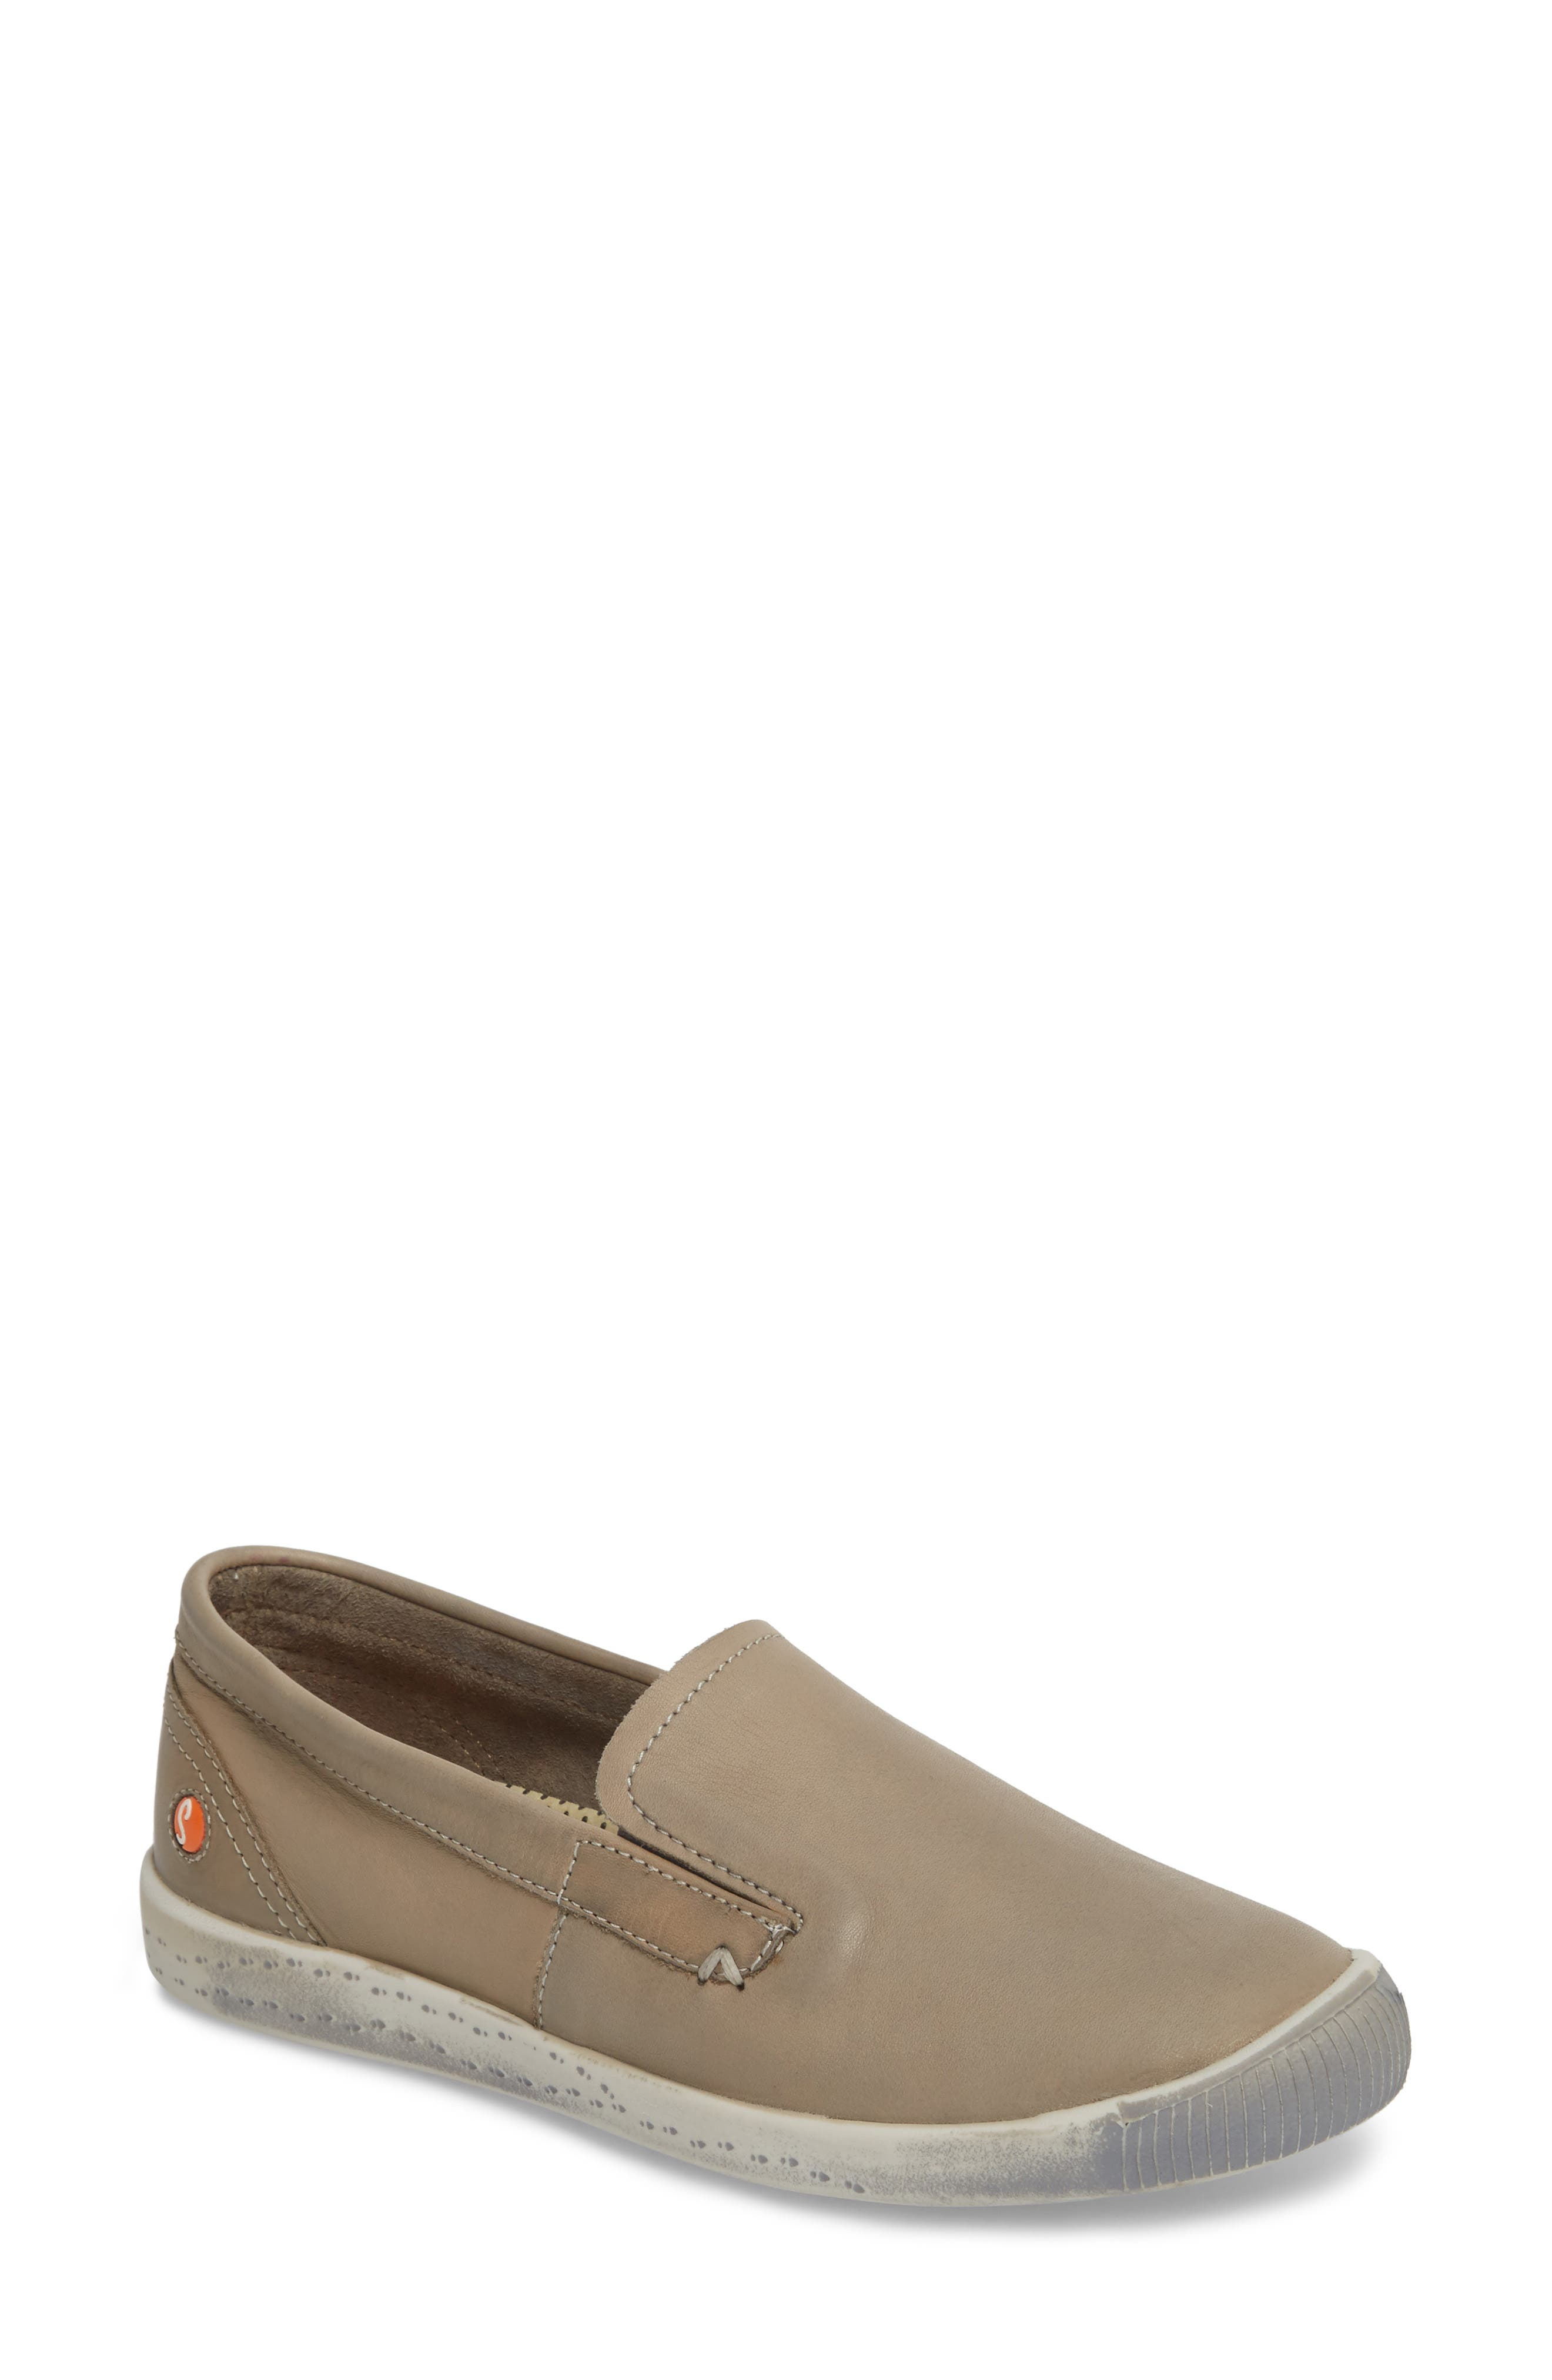 Ita Slip-On Sneaker,                             Main thumbnail 1, color,                             TAUPE/ TAUPE LEATHER